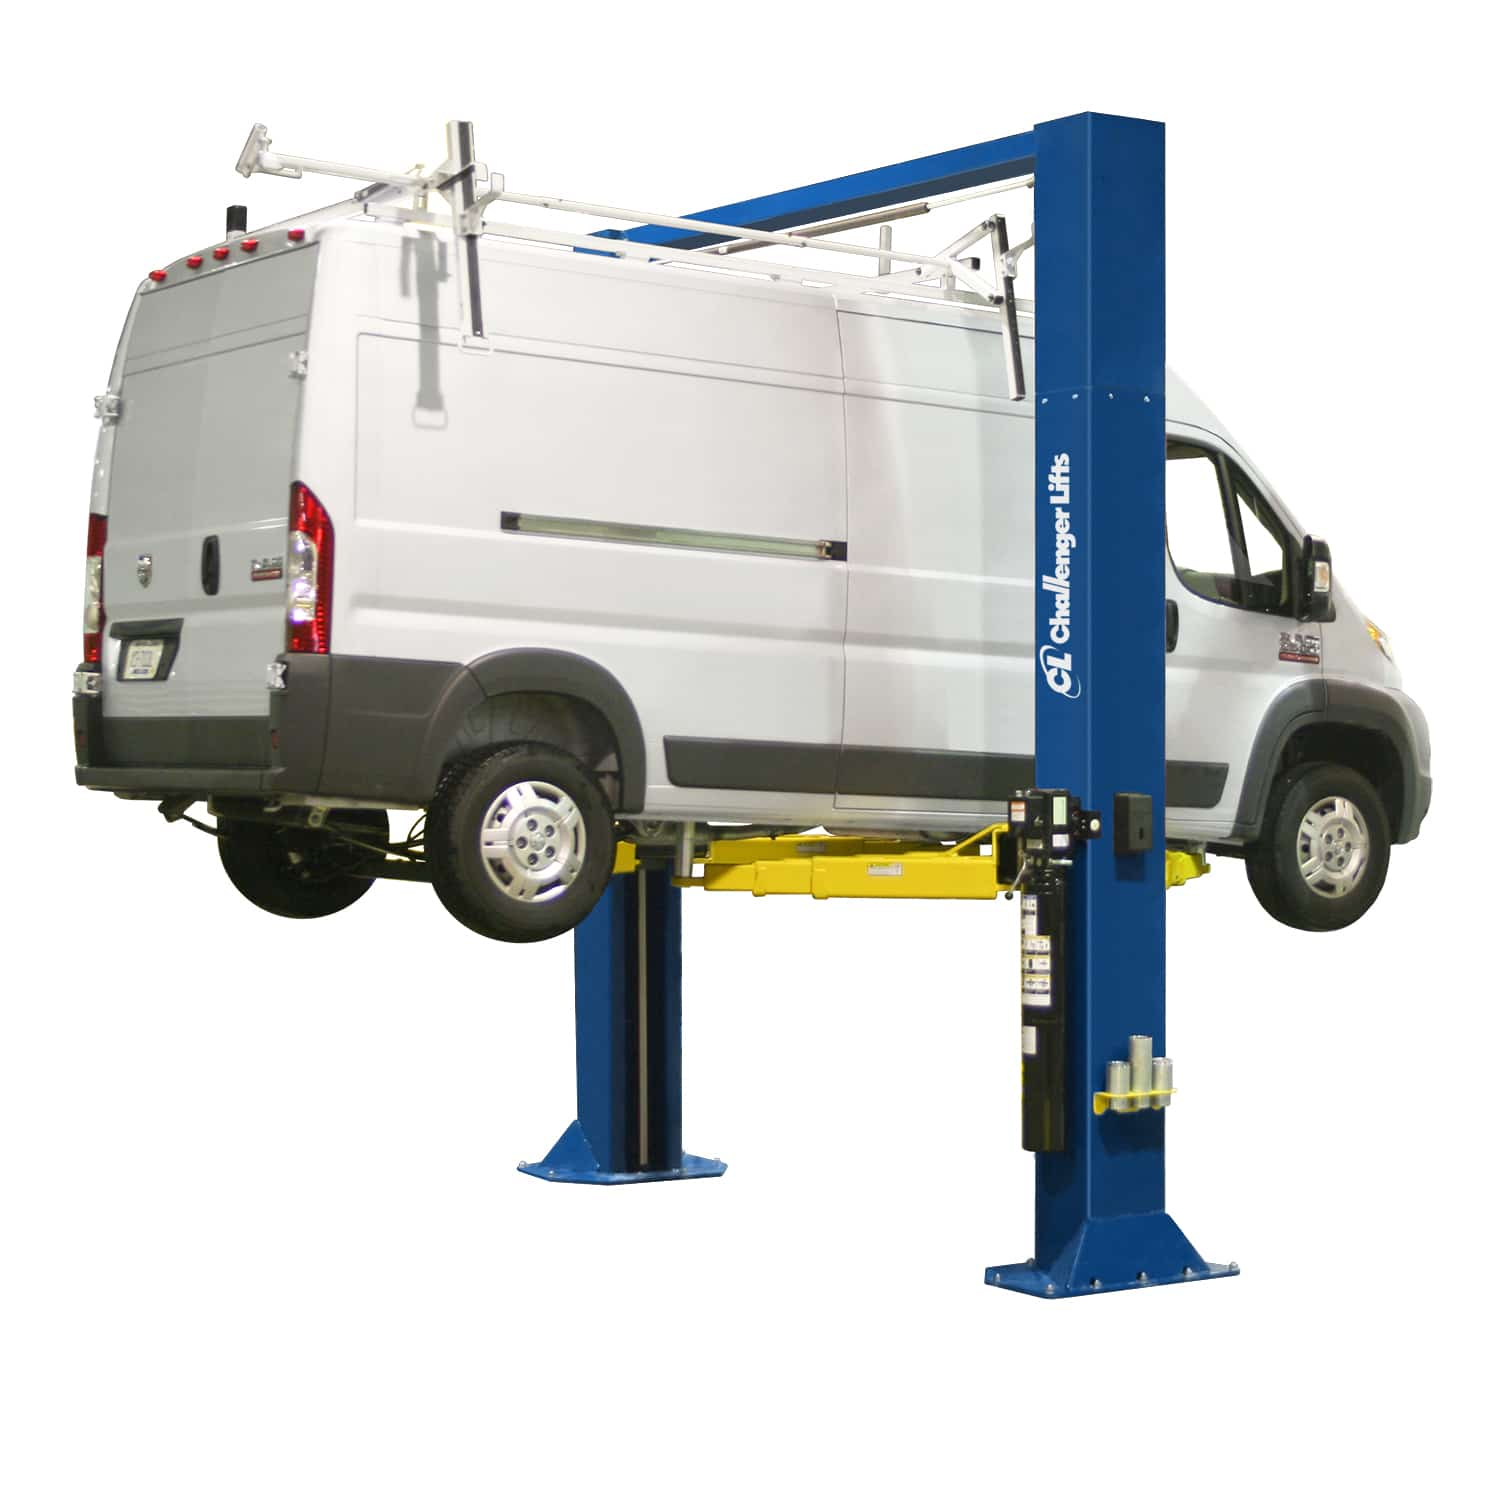 Challenger's 15000 2-post lift can expand your fleet service